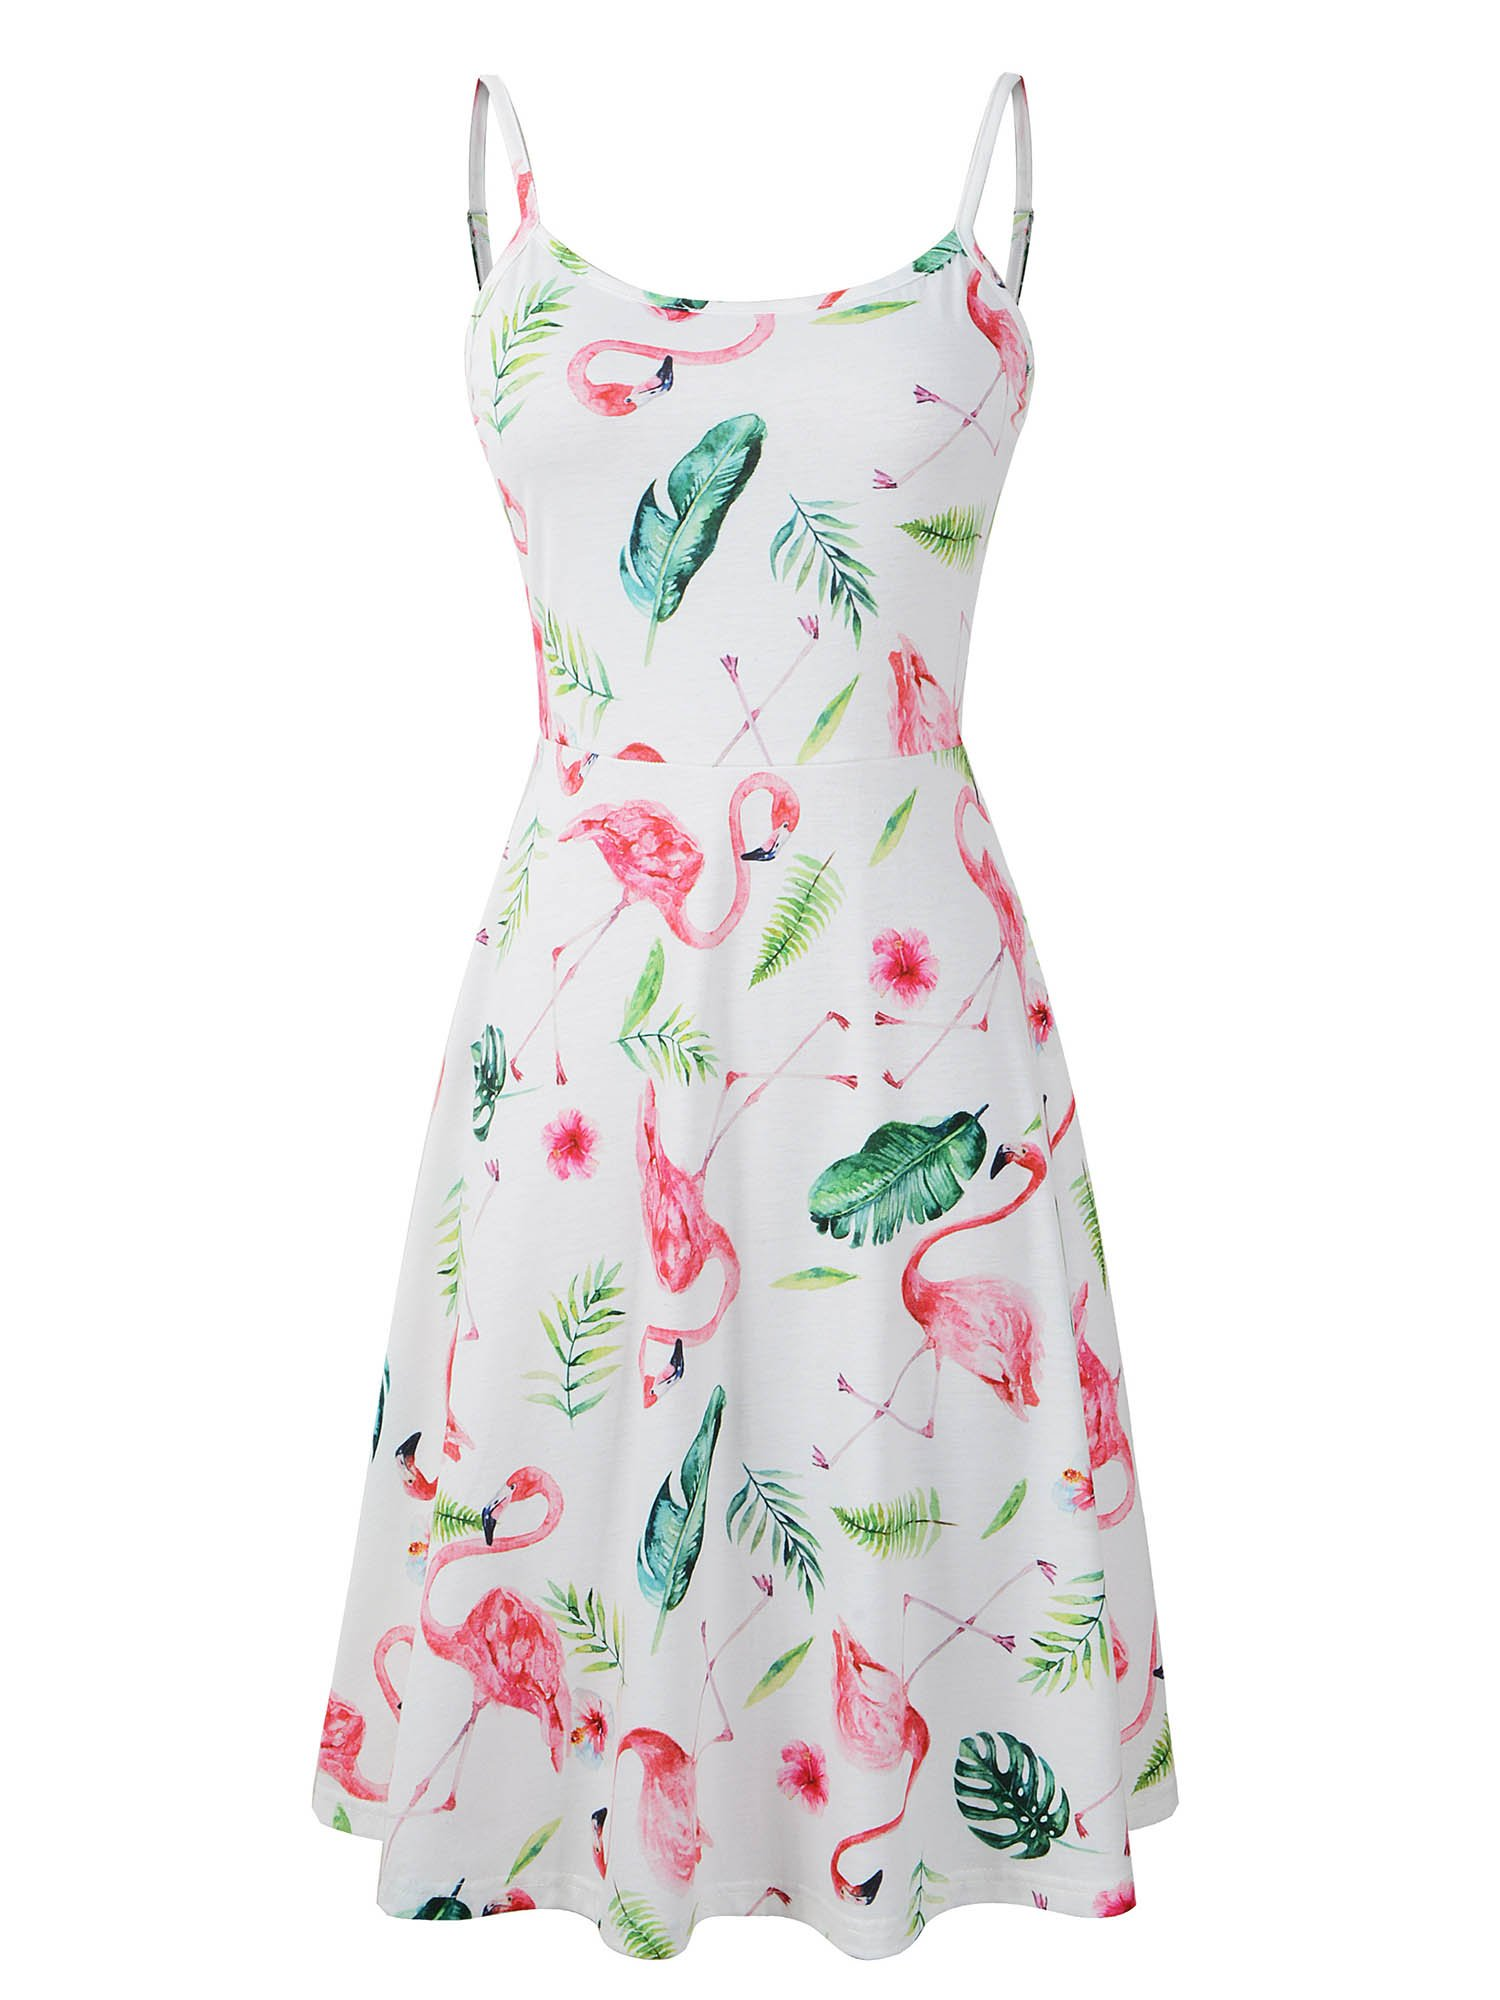 Luckco Women's Sleeveless Adjustable Strappy Summer Floral Flared Swing Dress (Medium, FL-12)